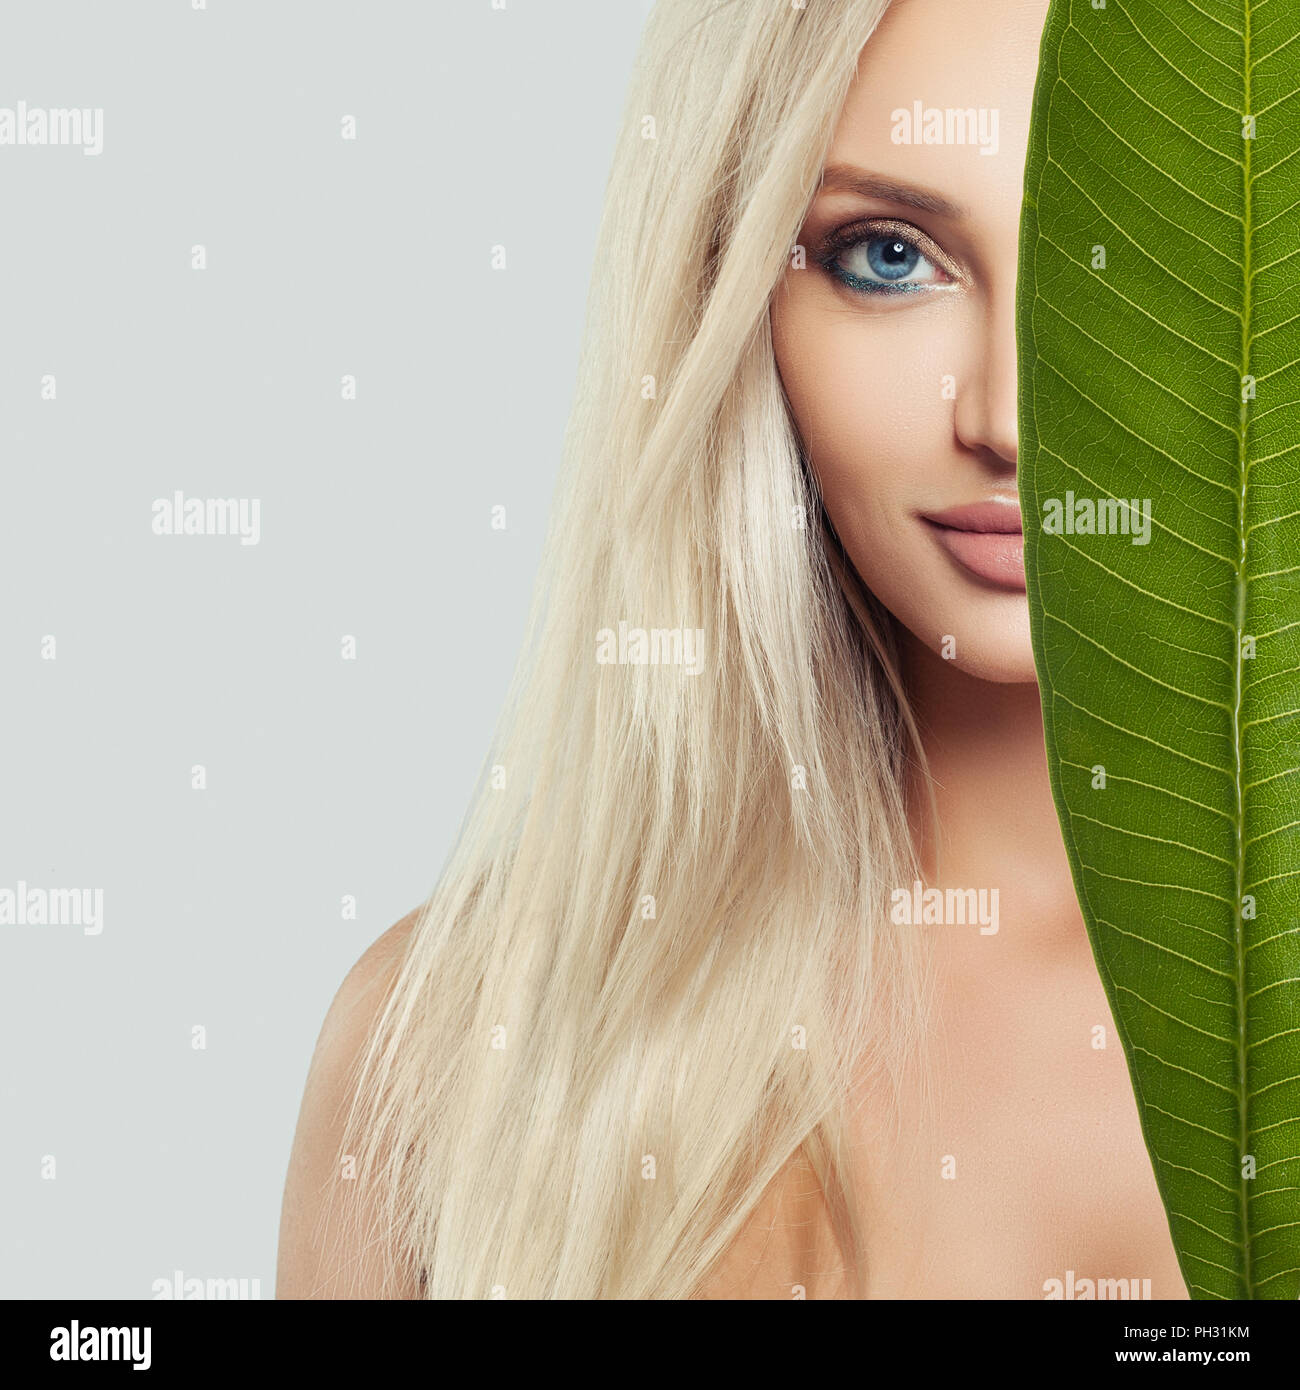 Young Perfect Female Face Beautiful Blonde Woman With Healthy Skin And Green Leaf Natural Beauty Stock Photo Alamy